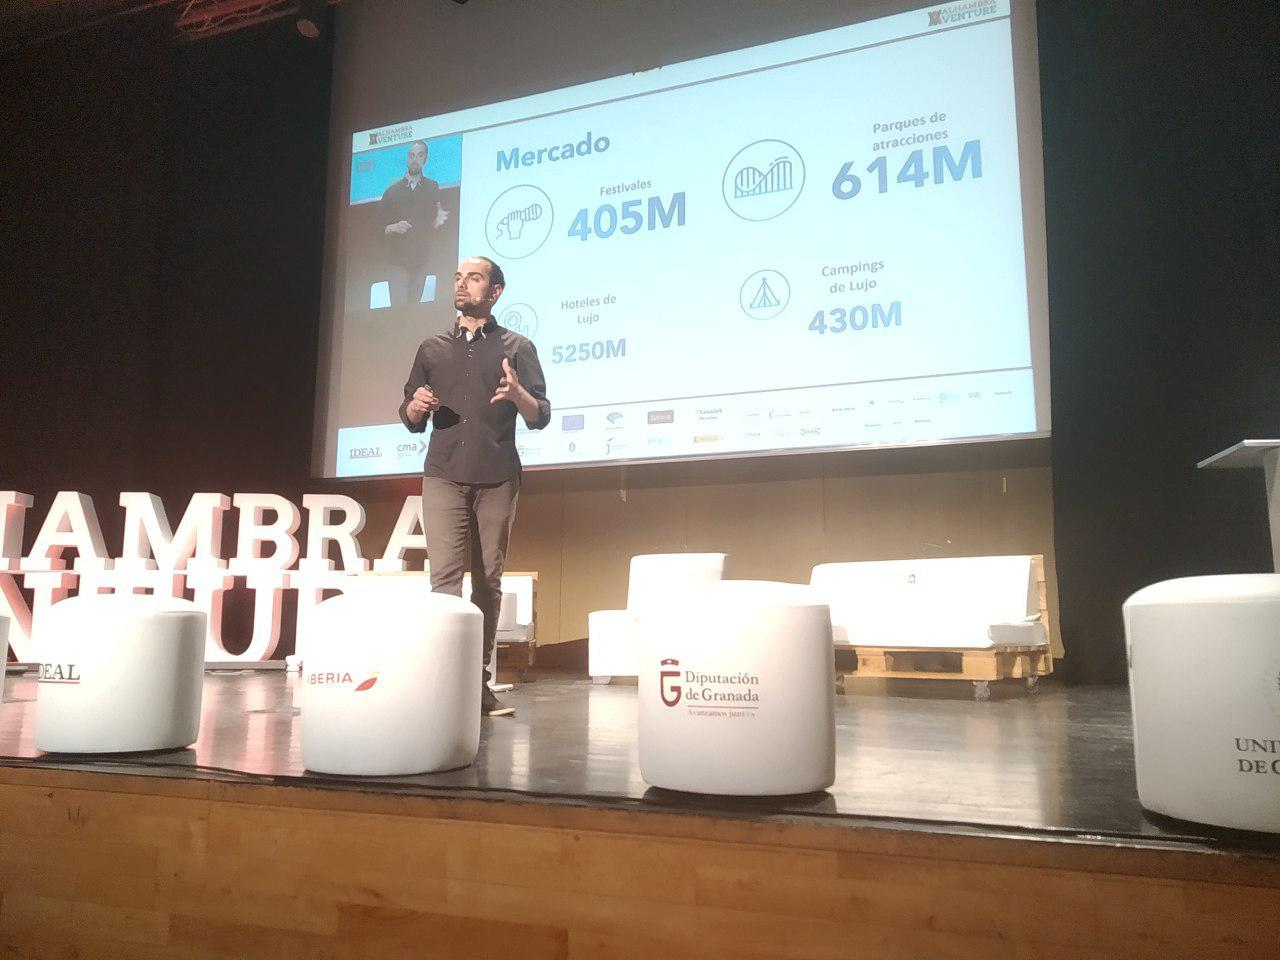 Pitches Alhambra Venture